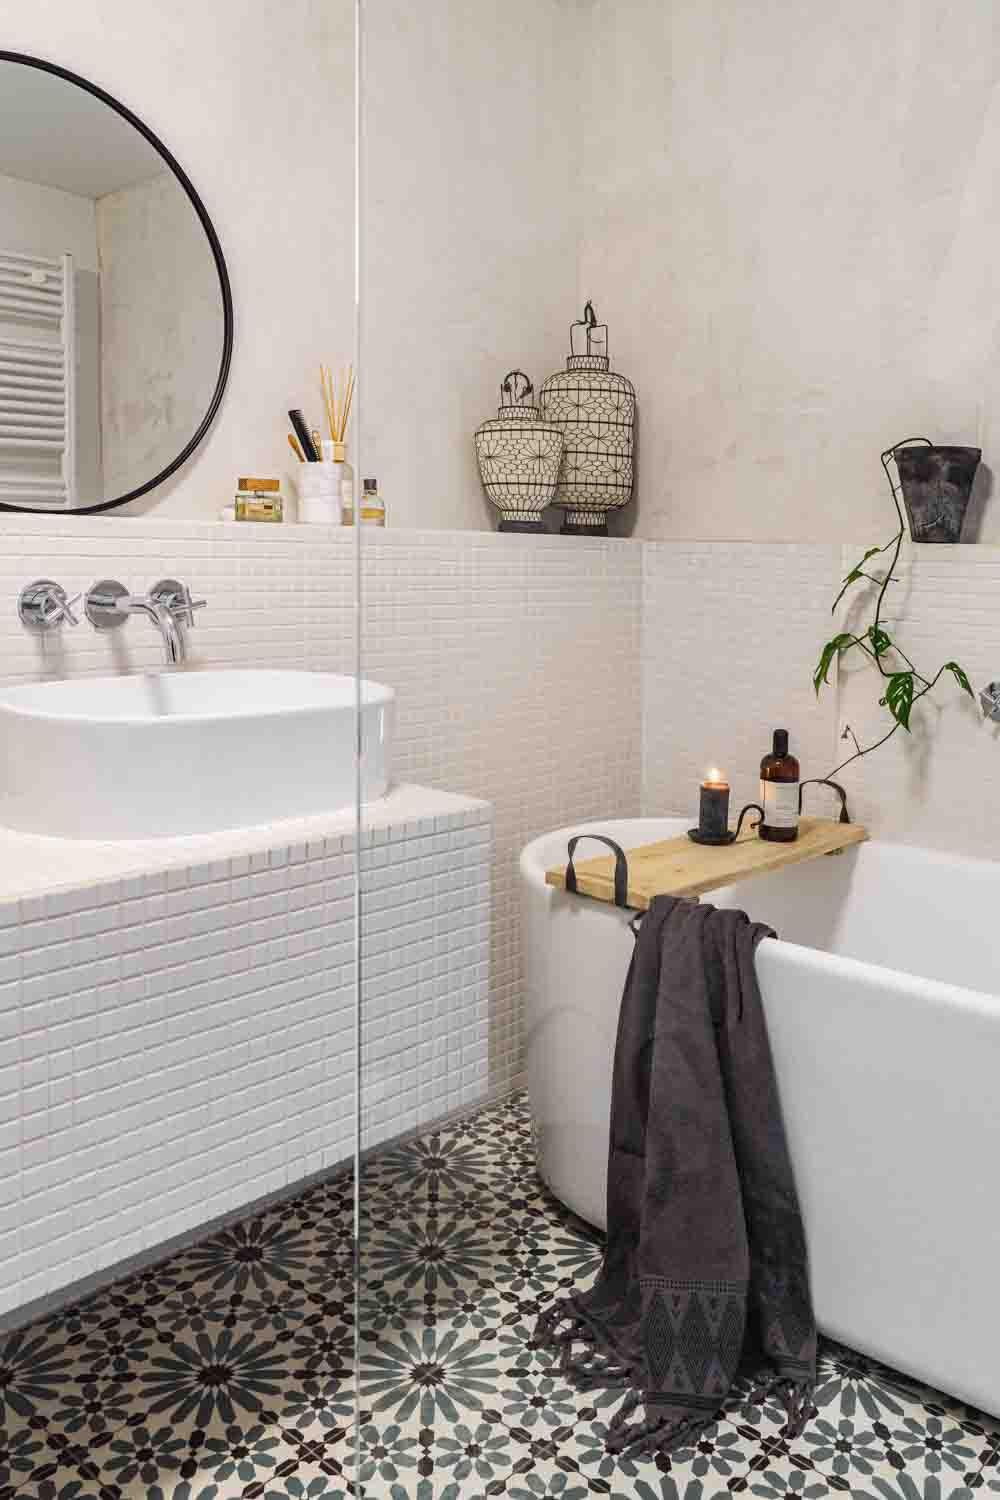 Hammam inspired bathroom with Marrakech Walls in Ashes, white tiled walls and a modern white bathtub